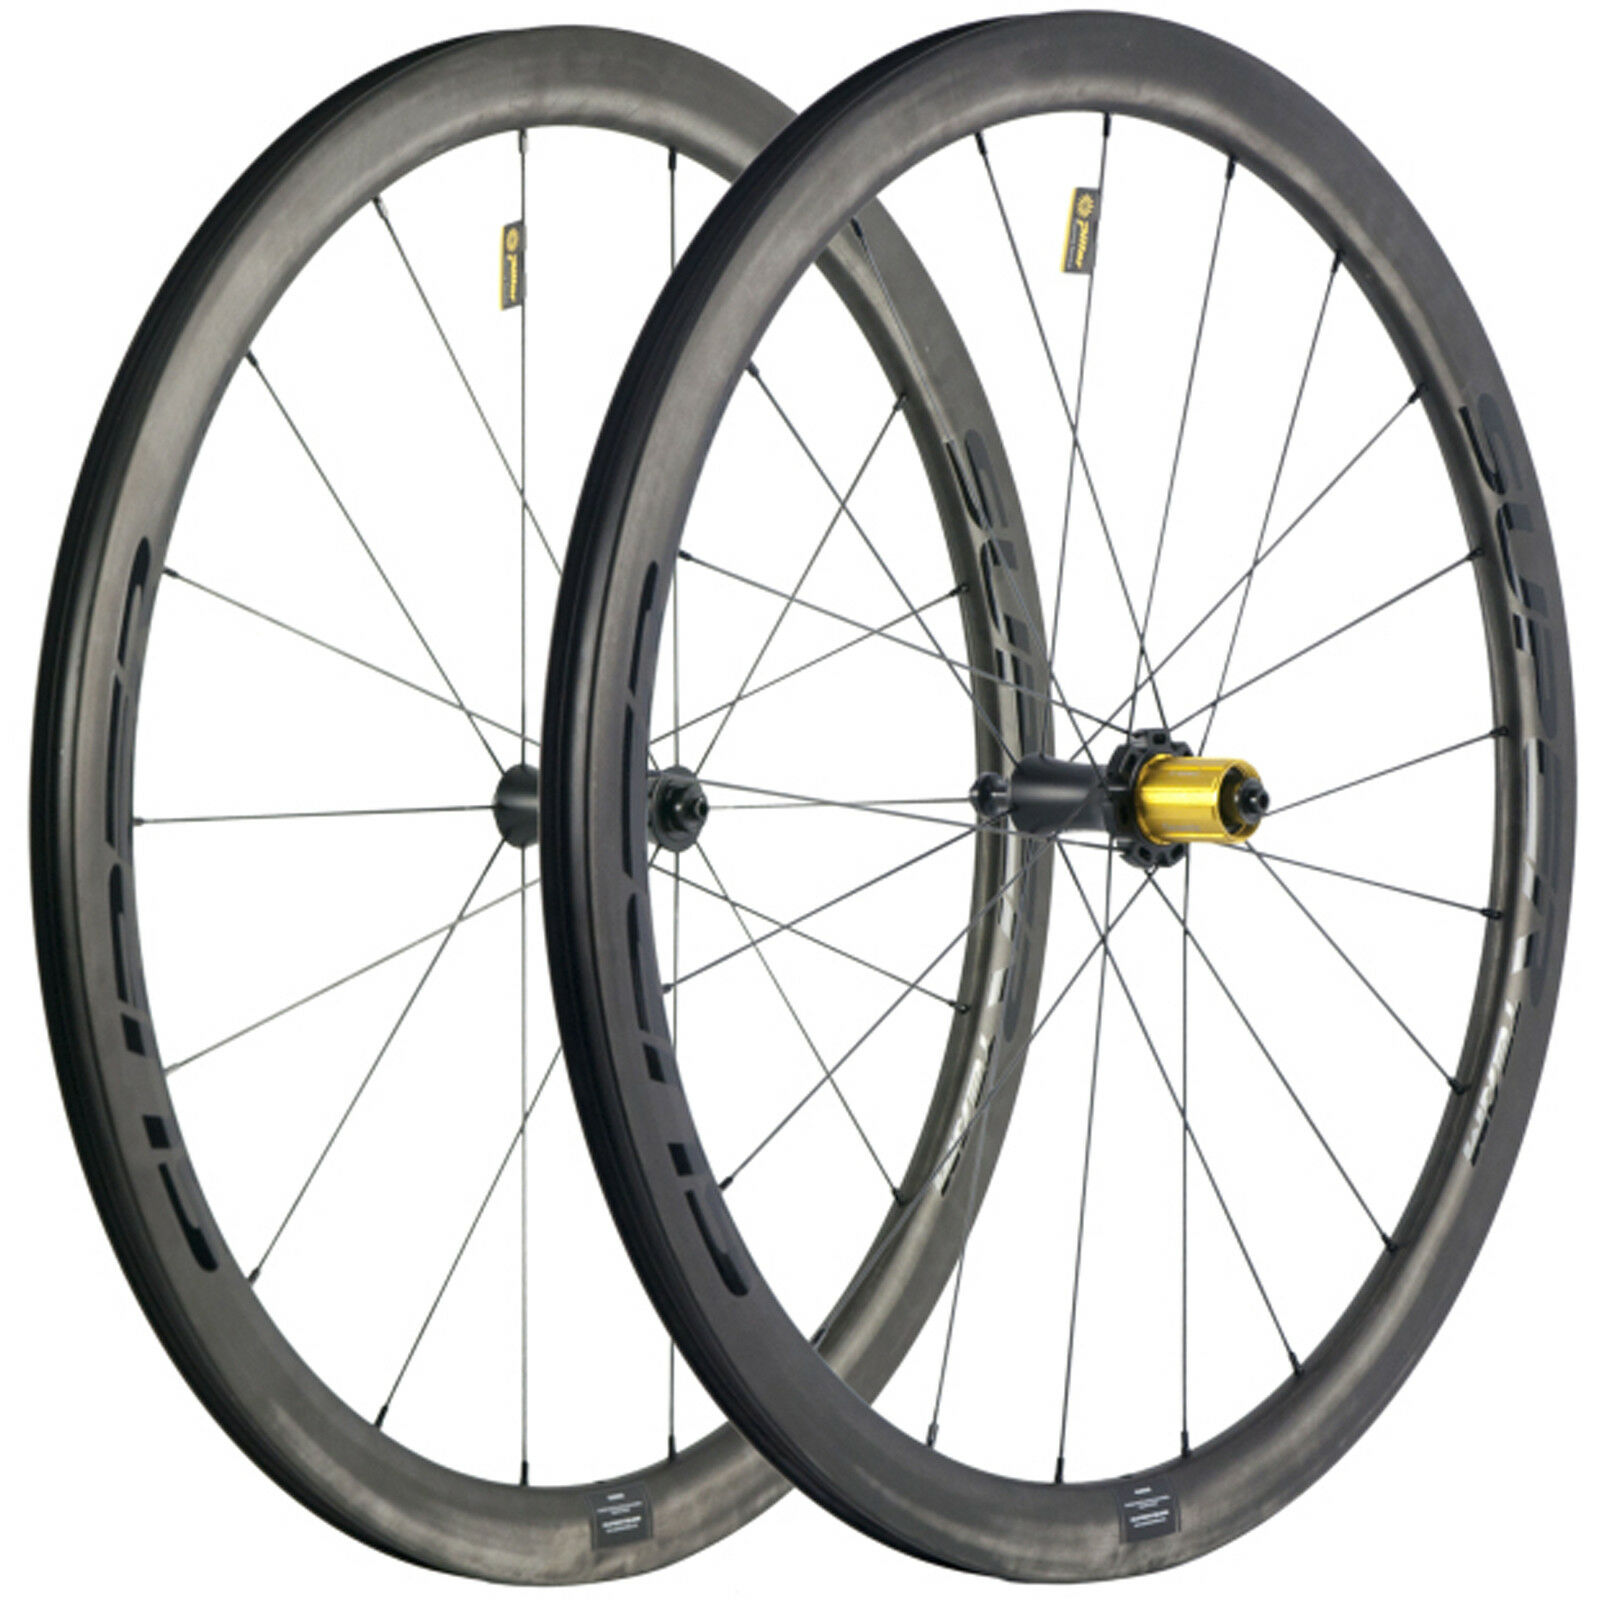 Superteam 40mm Bicycle Wheels  25mm Width Tubeless Carbon Wheelset R7 Ceramic Hub  cheap and top quality